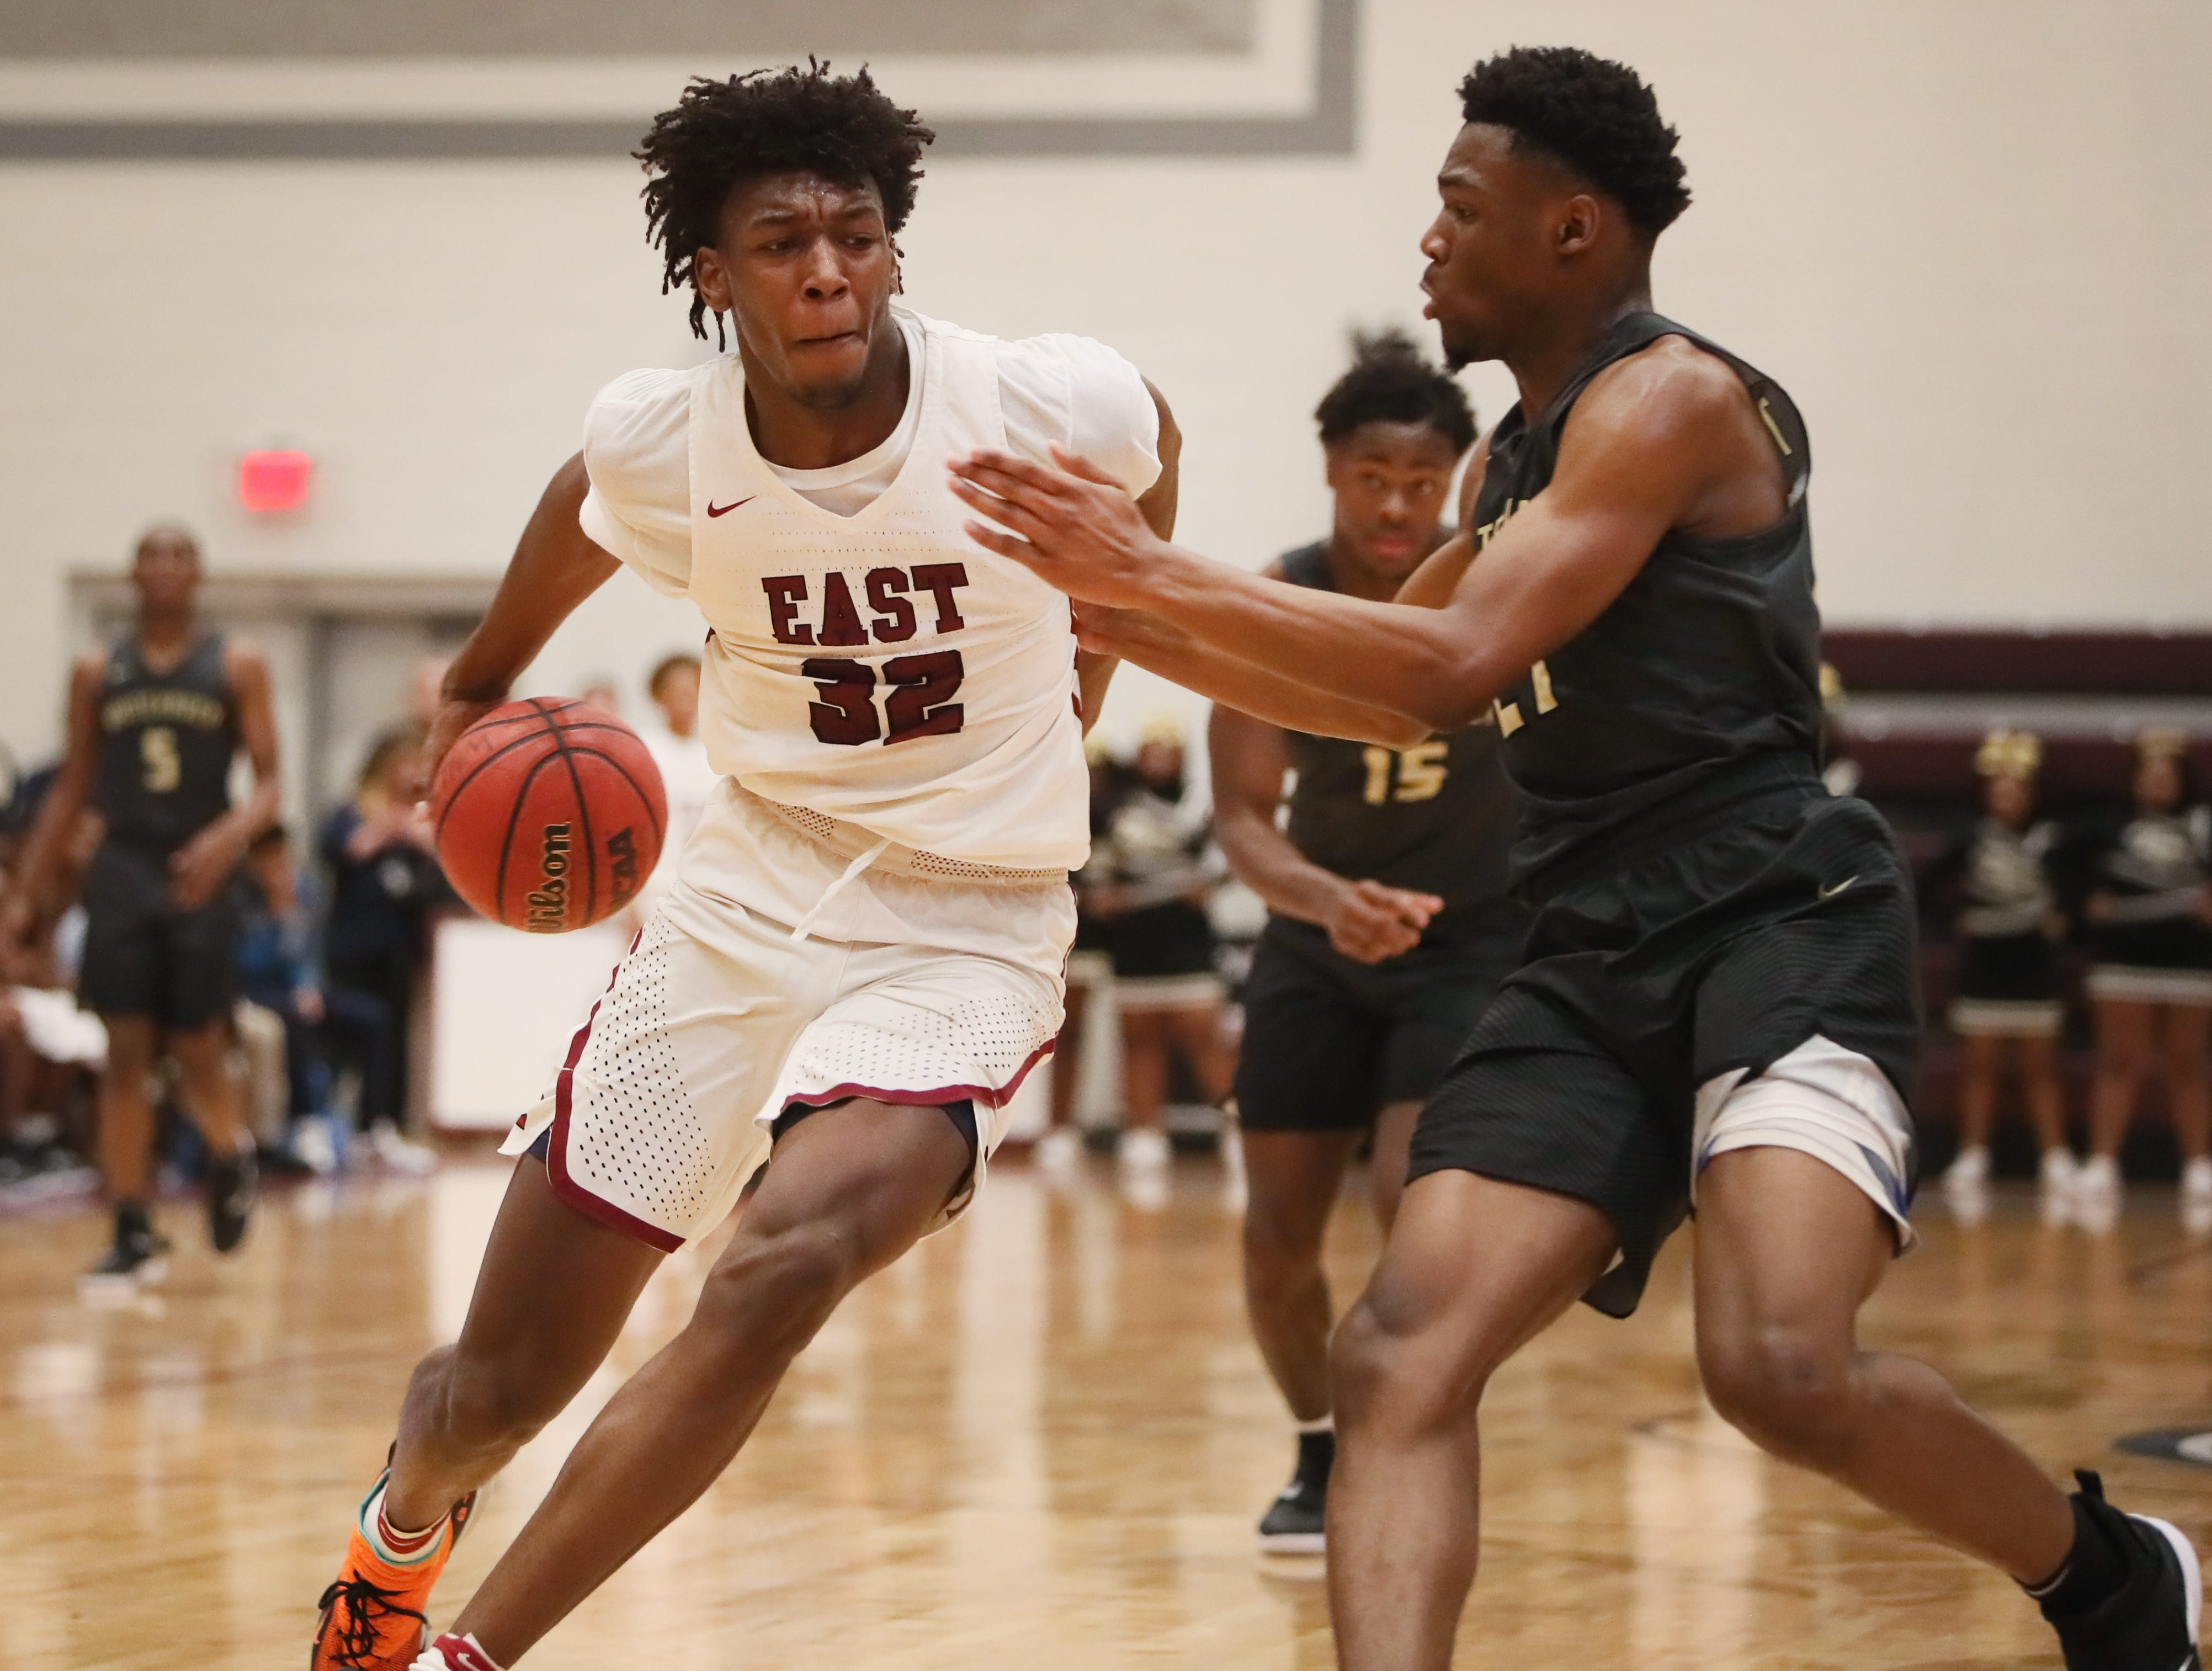 Memphis East's James Wiseman dribbles behind his back, trying to break away from against Whitehaven's Devine Owens during their Region 8AAA Championship game at Collierville High School on Thursday, Feb. 28, 2019.